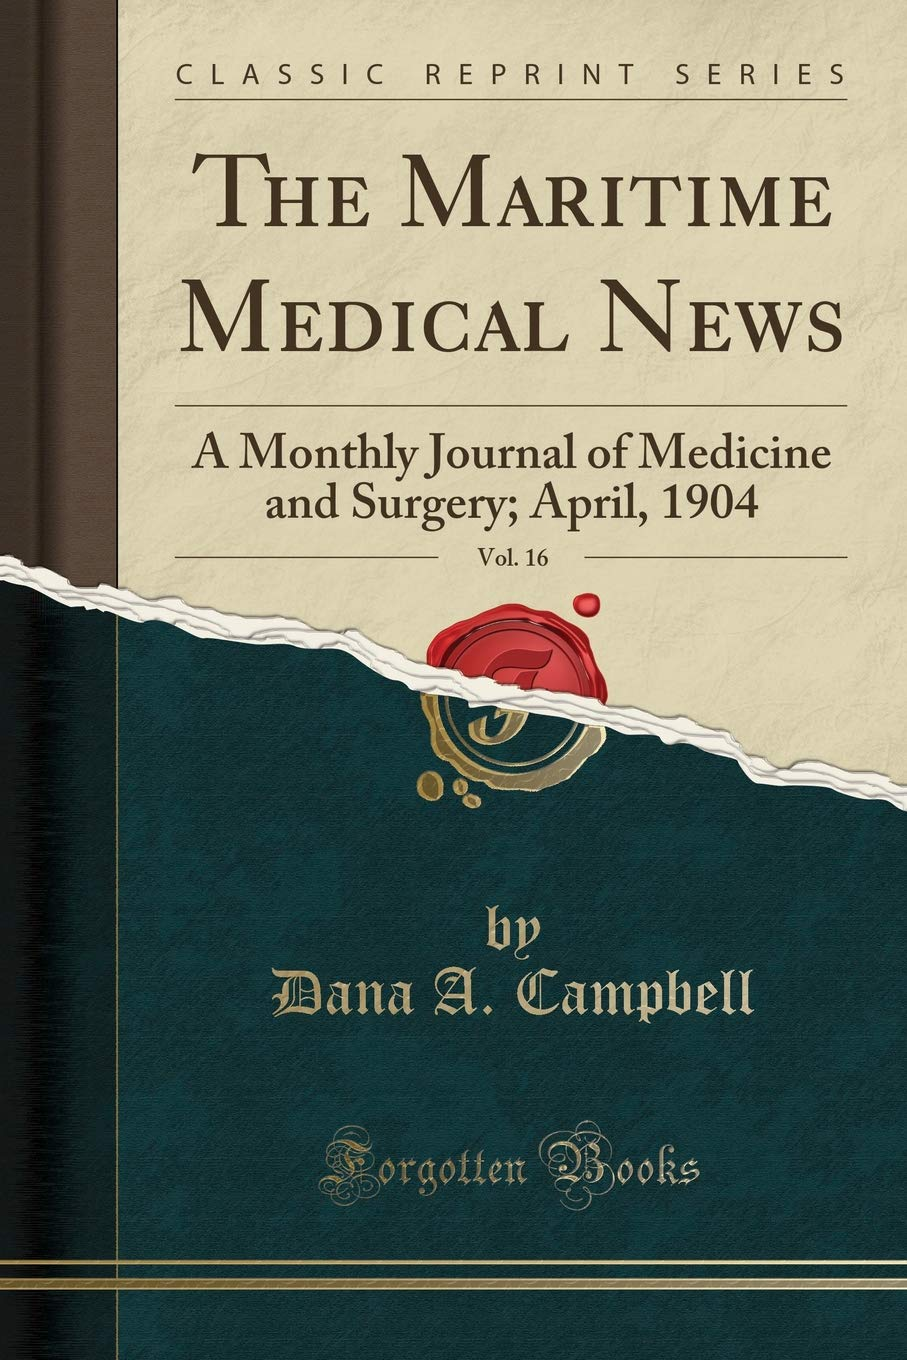 Download The Maritime Medical News, Vol. 16: A Monthly Journal of Medicine and Surgery; April, 1904 (Classic Reprint) ebook